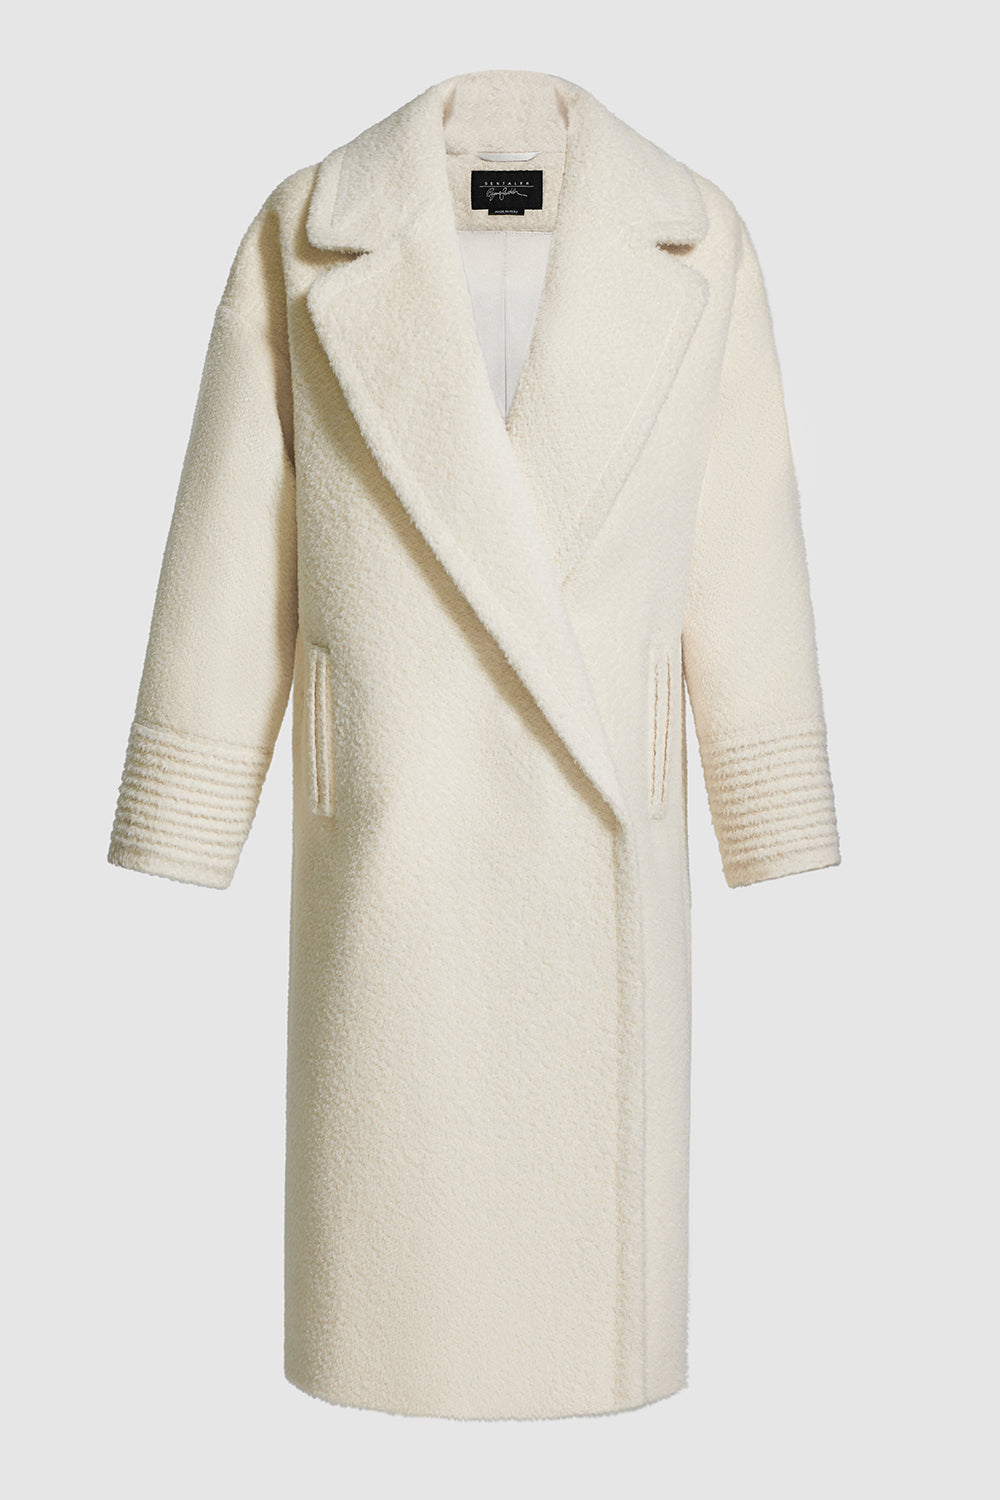 Sentaler Bouclé Alpaca Long Oversized Notched Collar Coat featured in Bouclé Alpaca and available in Ivory. Seen off model.